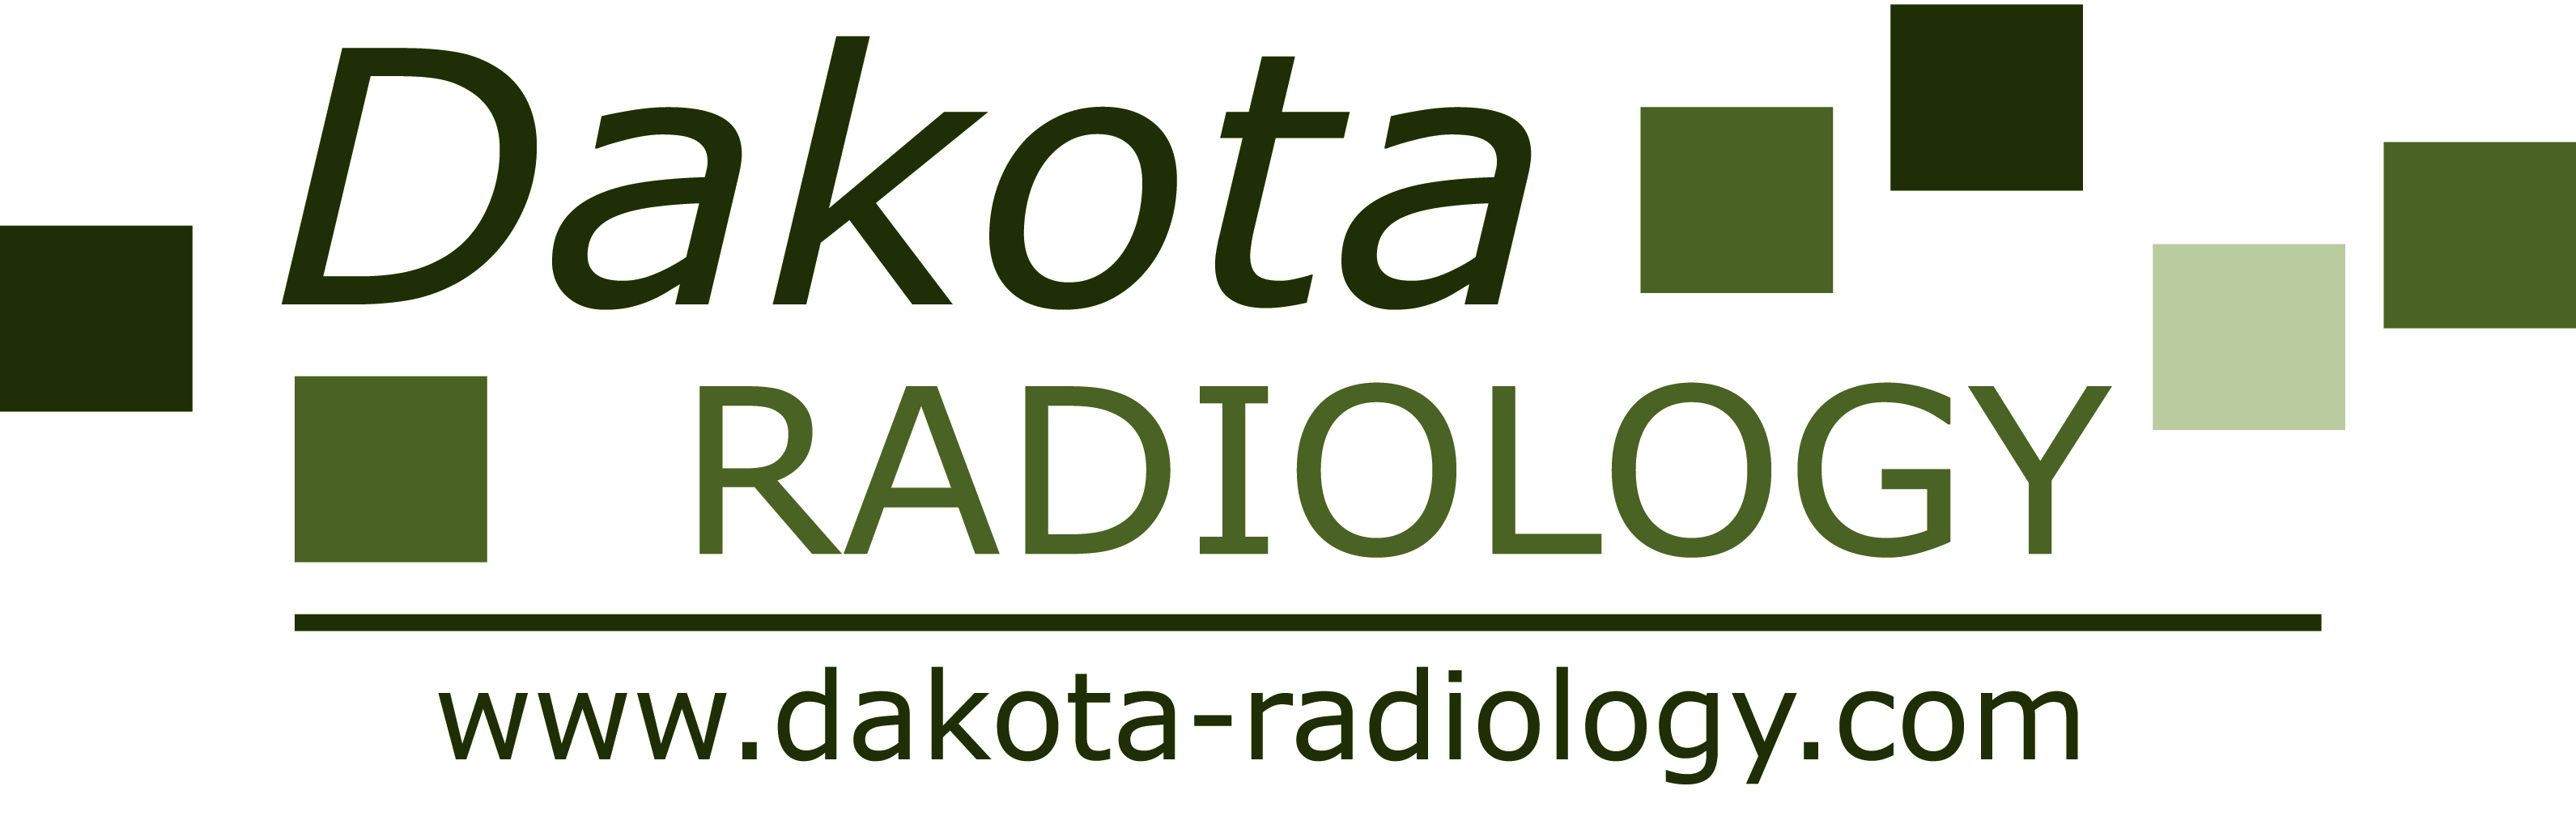 DakotaRadiology w website